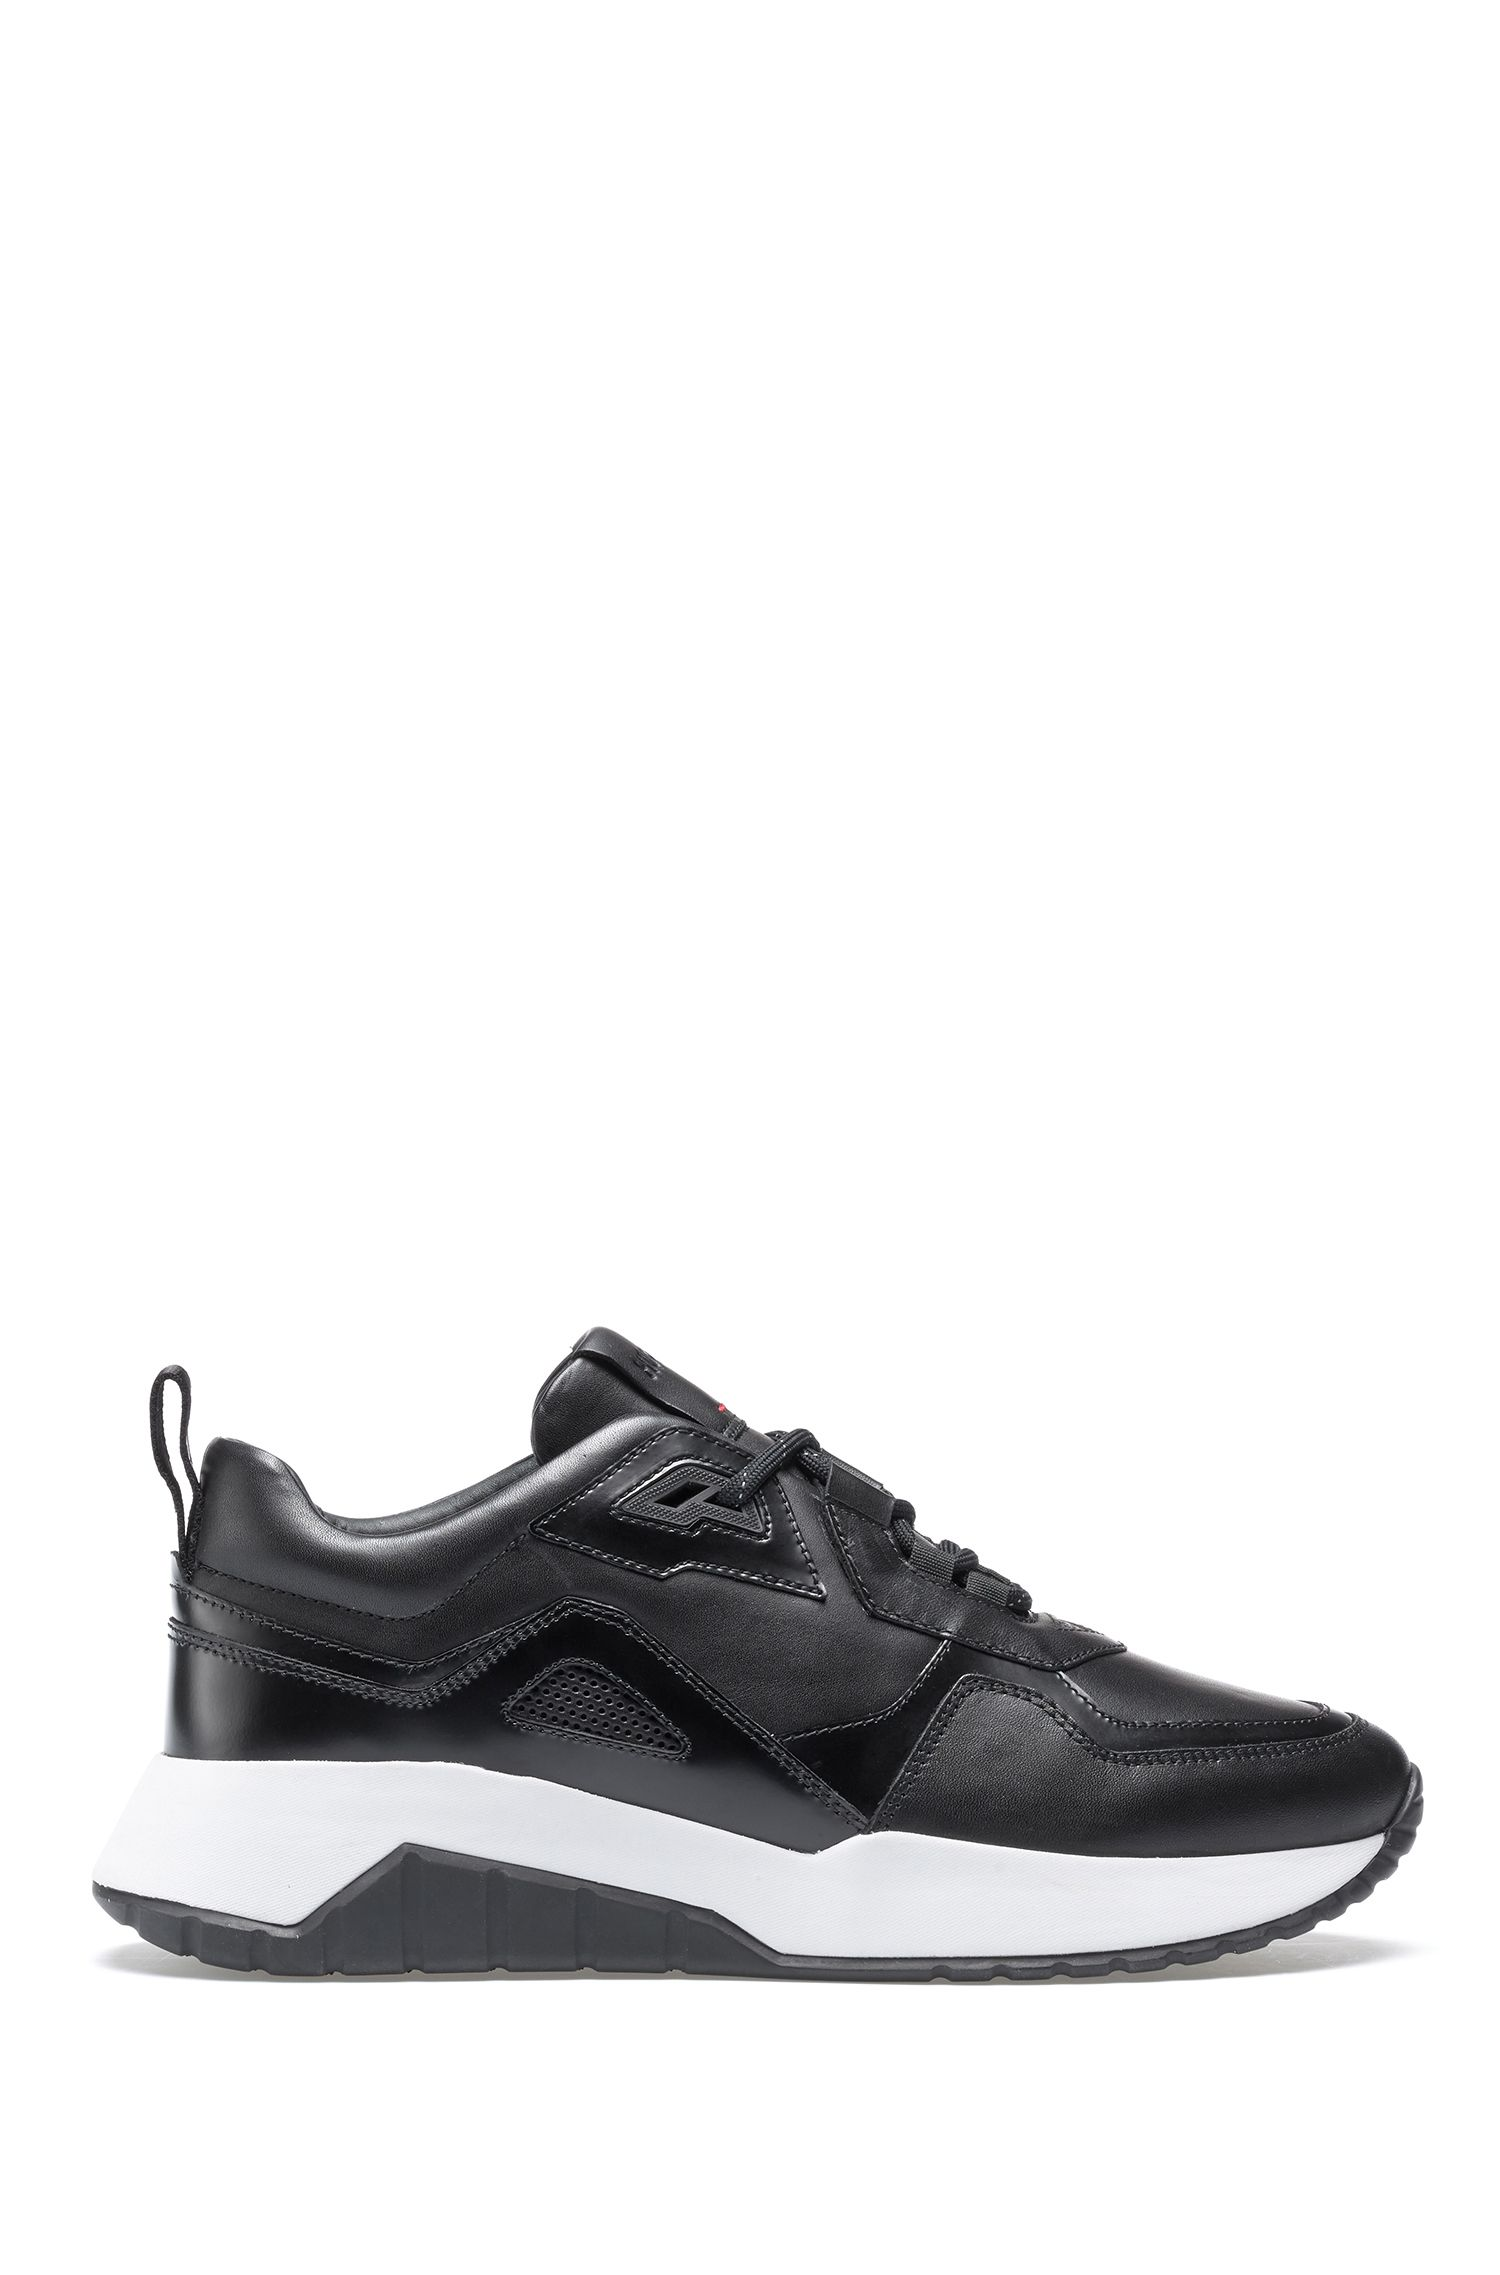 Lace-up sneakers in leather with perforated details, Black